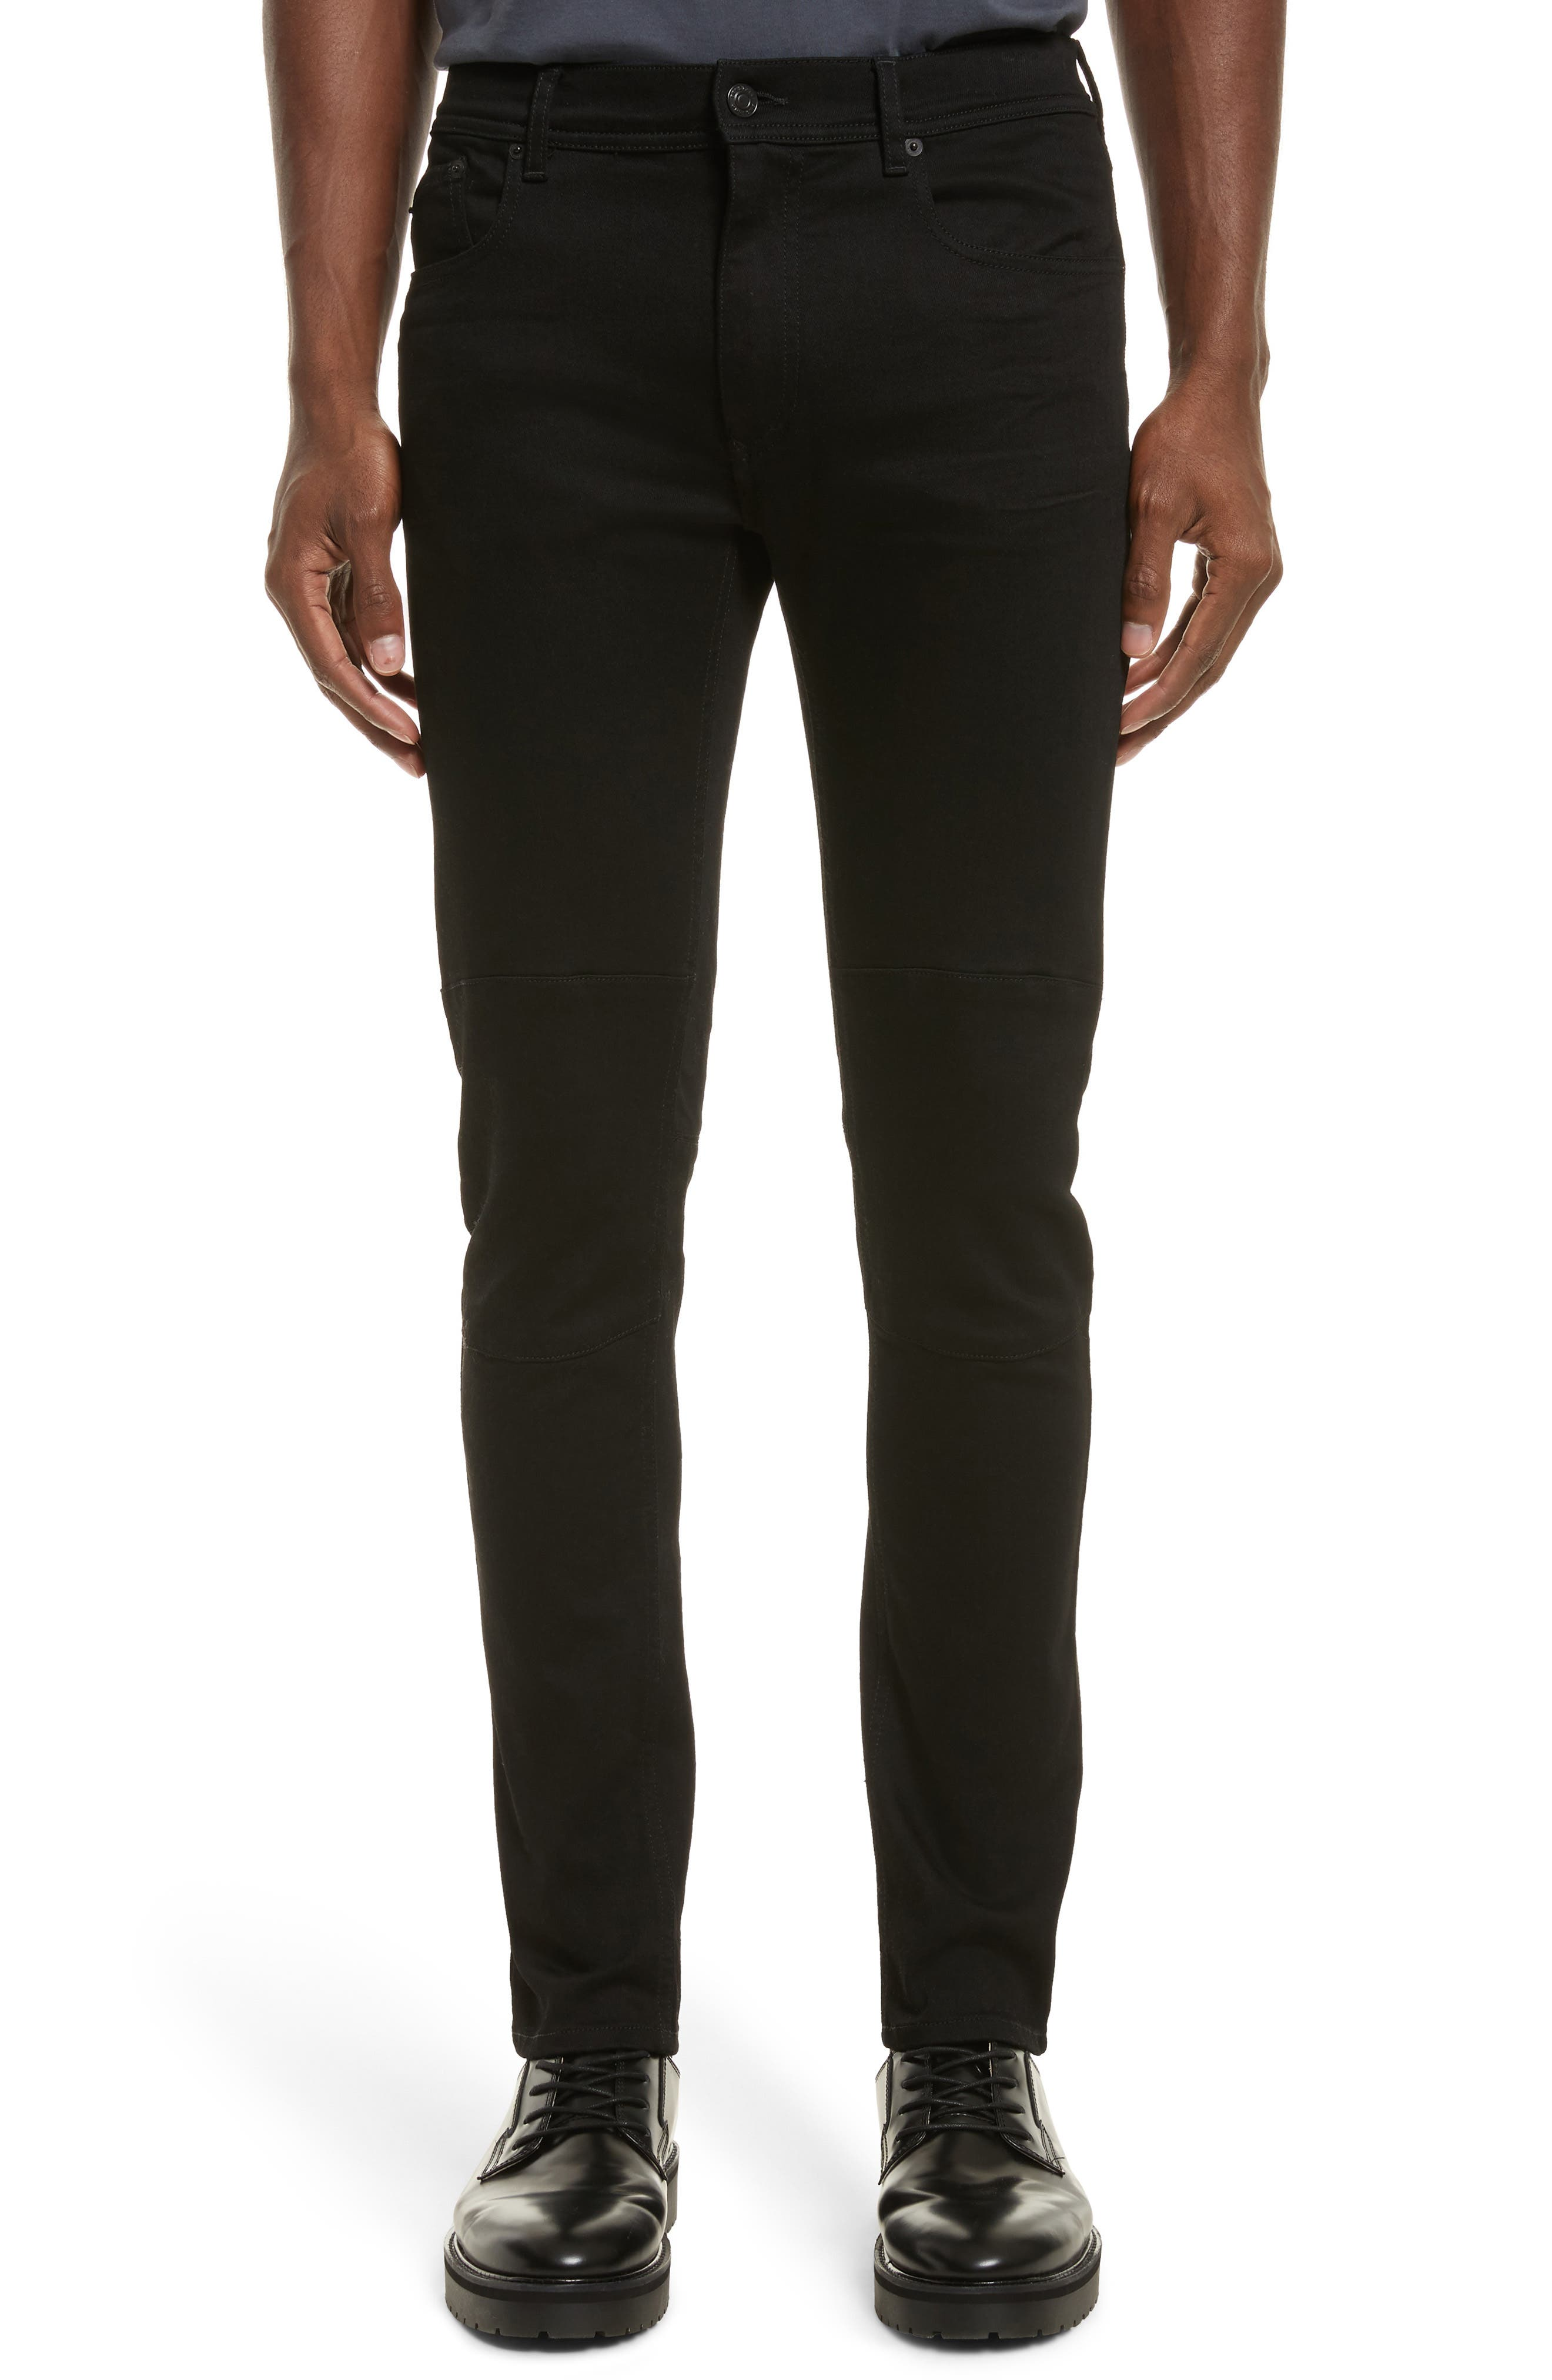 Tattenhall Slim Fit Jeans,                             Main thumbnail 1, color,                             Rinse Black